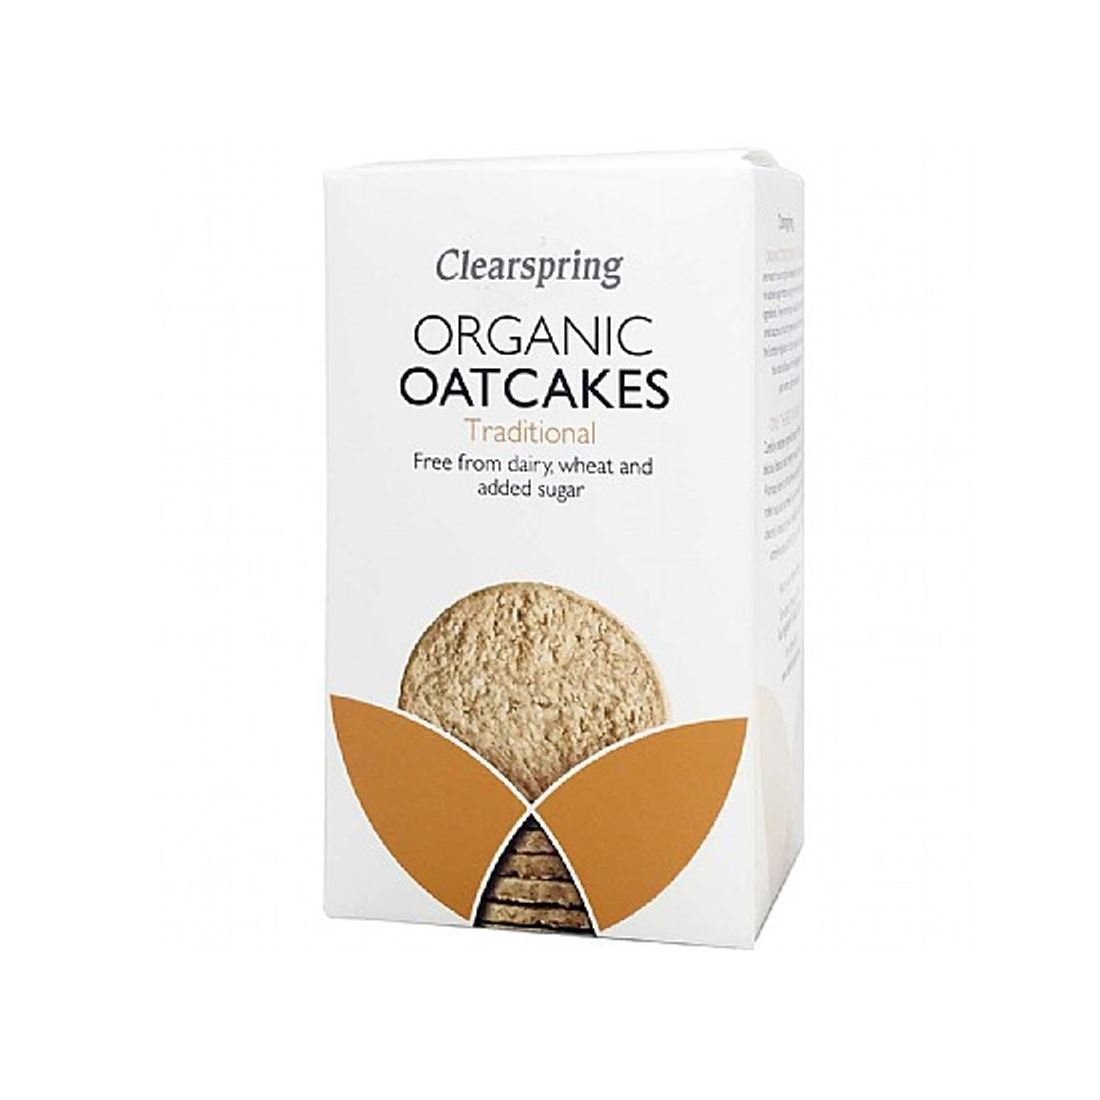 Clearspring | Oatcakes, Traditional, Organic | 12 x 200g